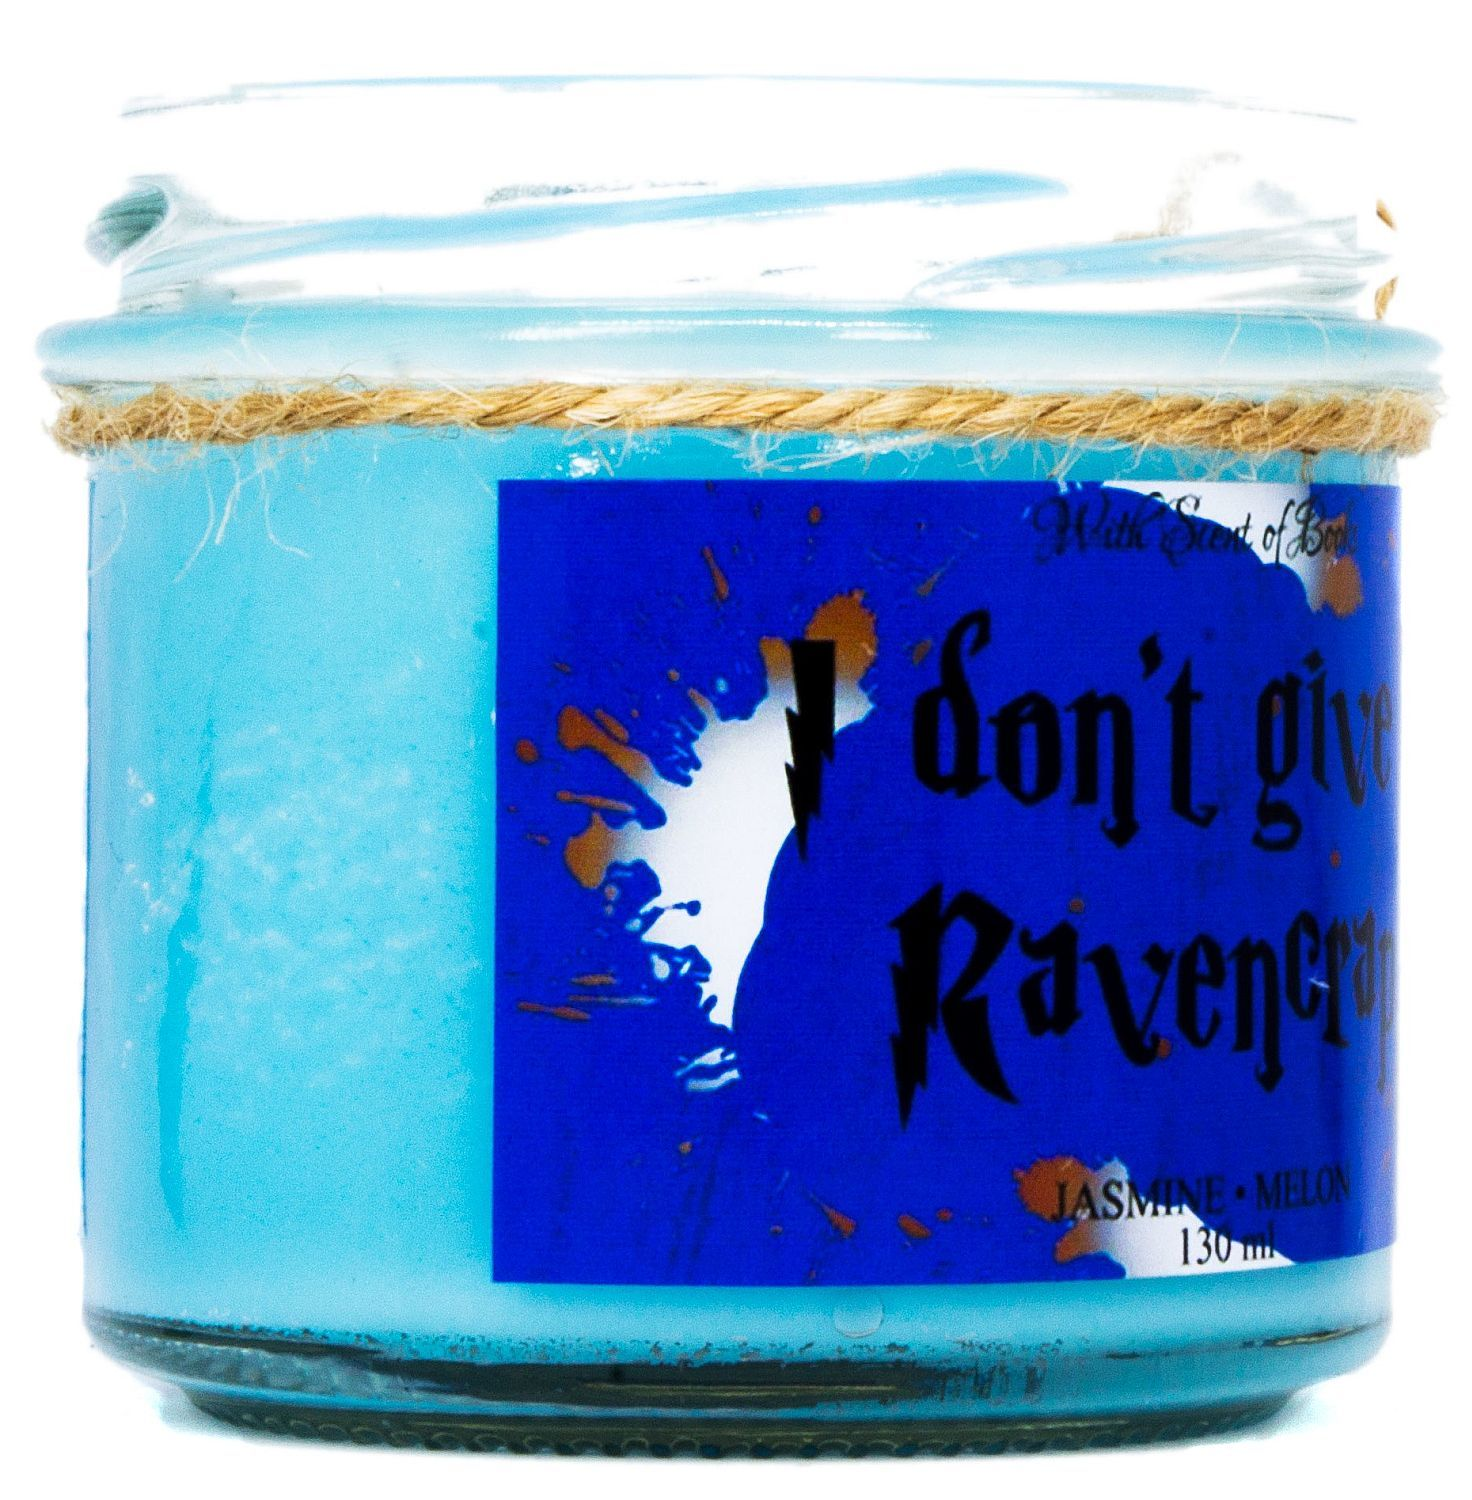 Ароматна свещ - I don't give a Ravencrap, 130 ml - 2